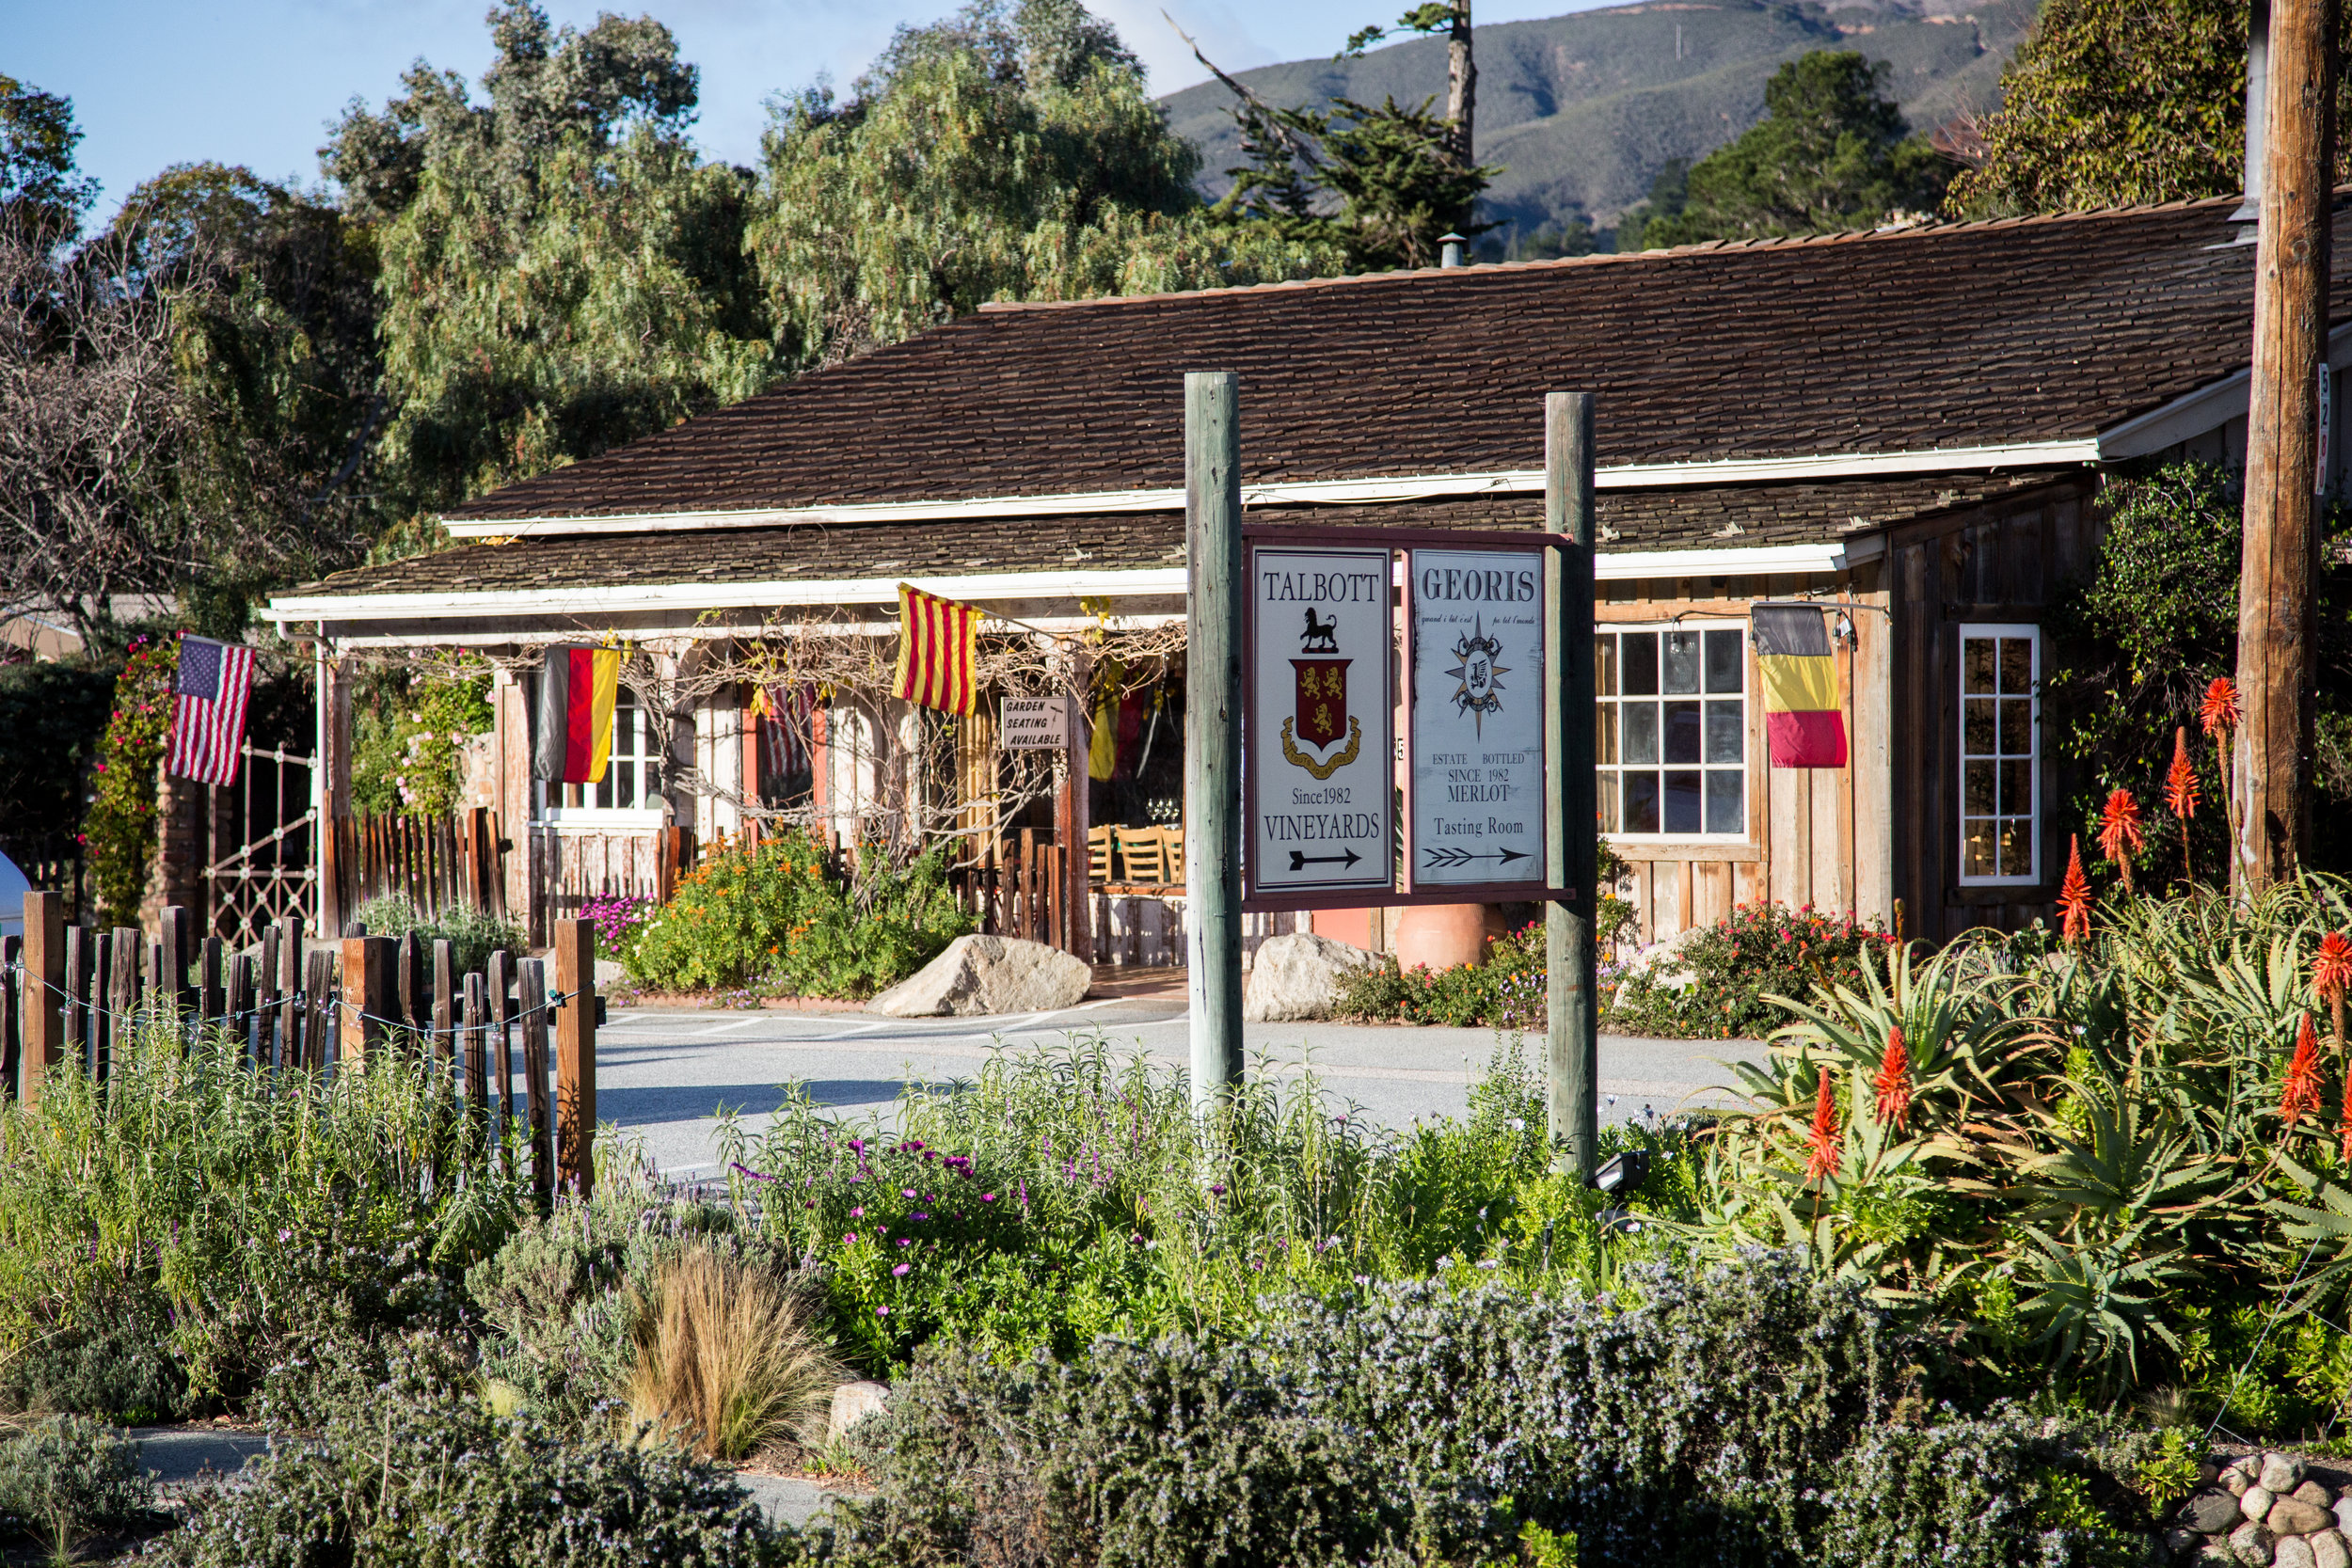 Restaurants - Only in Monterey County can food enthusiasts zip down the Big Sur coastline to have breakfast nestled beneath the redwoods and then have fresh local sanddabs for lunch while watching sea otters play below. The health conscious foodie will savor the produce straight from the fields of the Salinas Valley while patrons of French cuisine will adore the eateries of Carmel-by-the-Sea. Simply put, Monterey County's diverse food scene has someone to offer even for the pickiest of eaters. (Image from MCCVB )